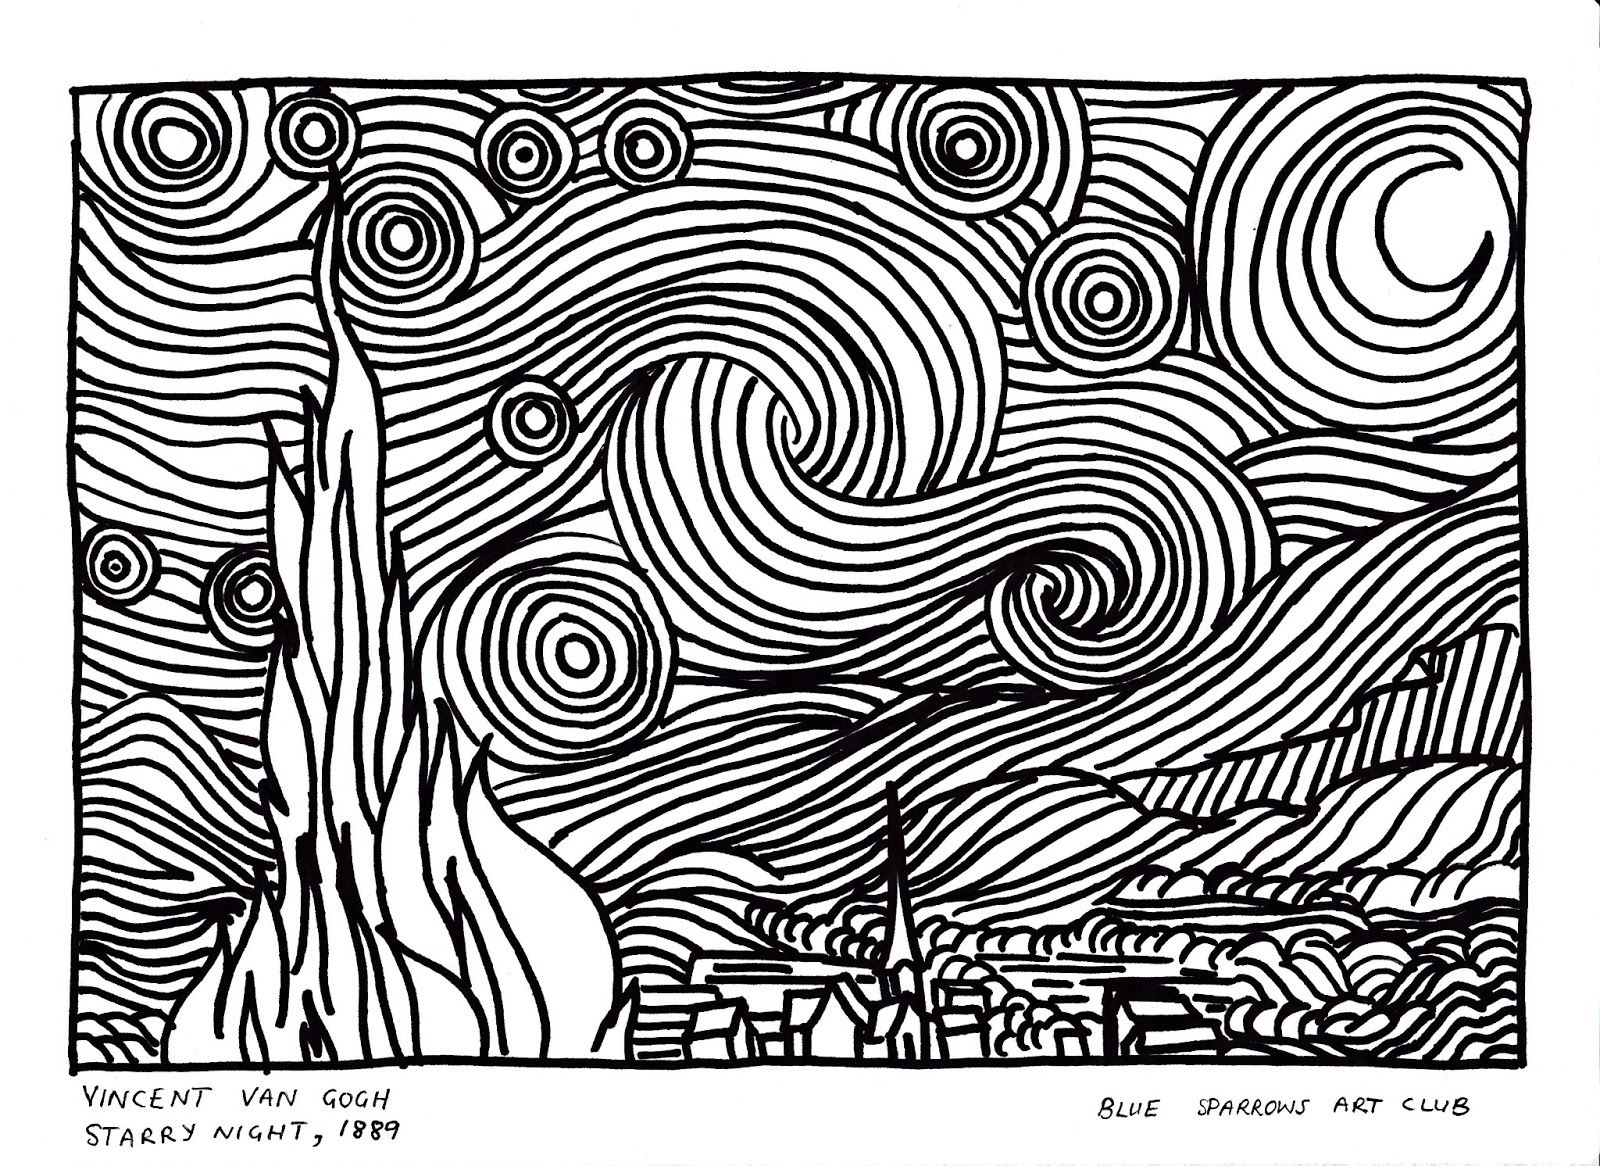 Big Abstract Coloring Pages : Van gogh starry night coloring page vincent van gogh starry night